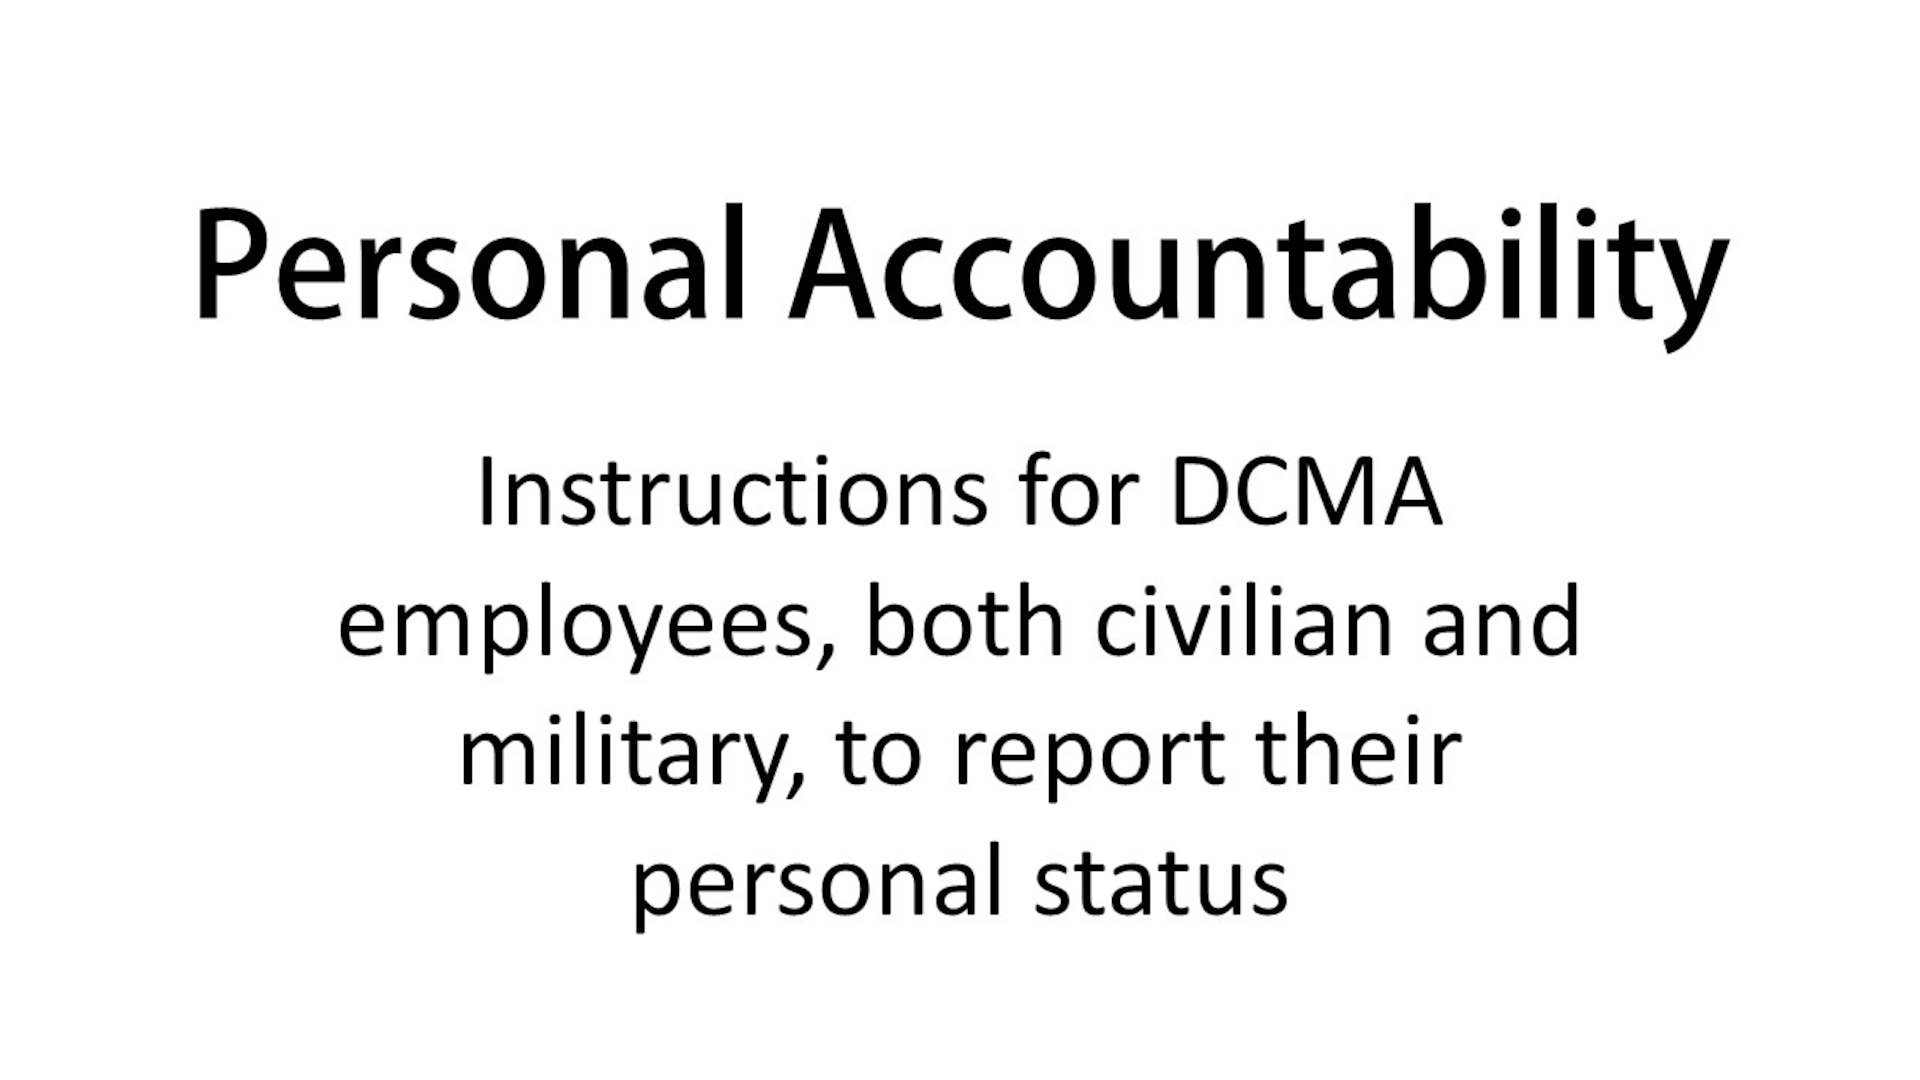 Instructions for DCMA employees, both civilian and military, to report their personal status.